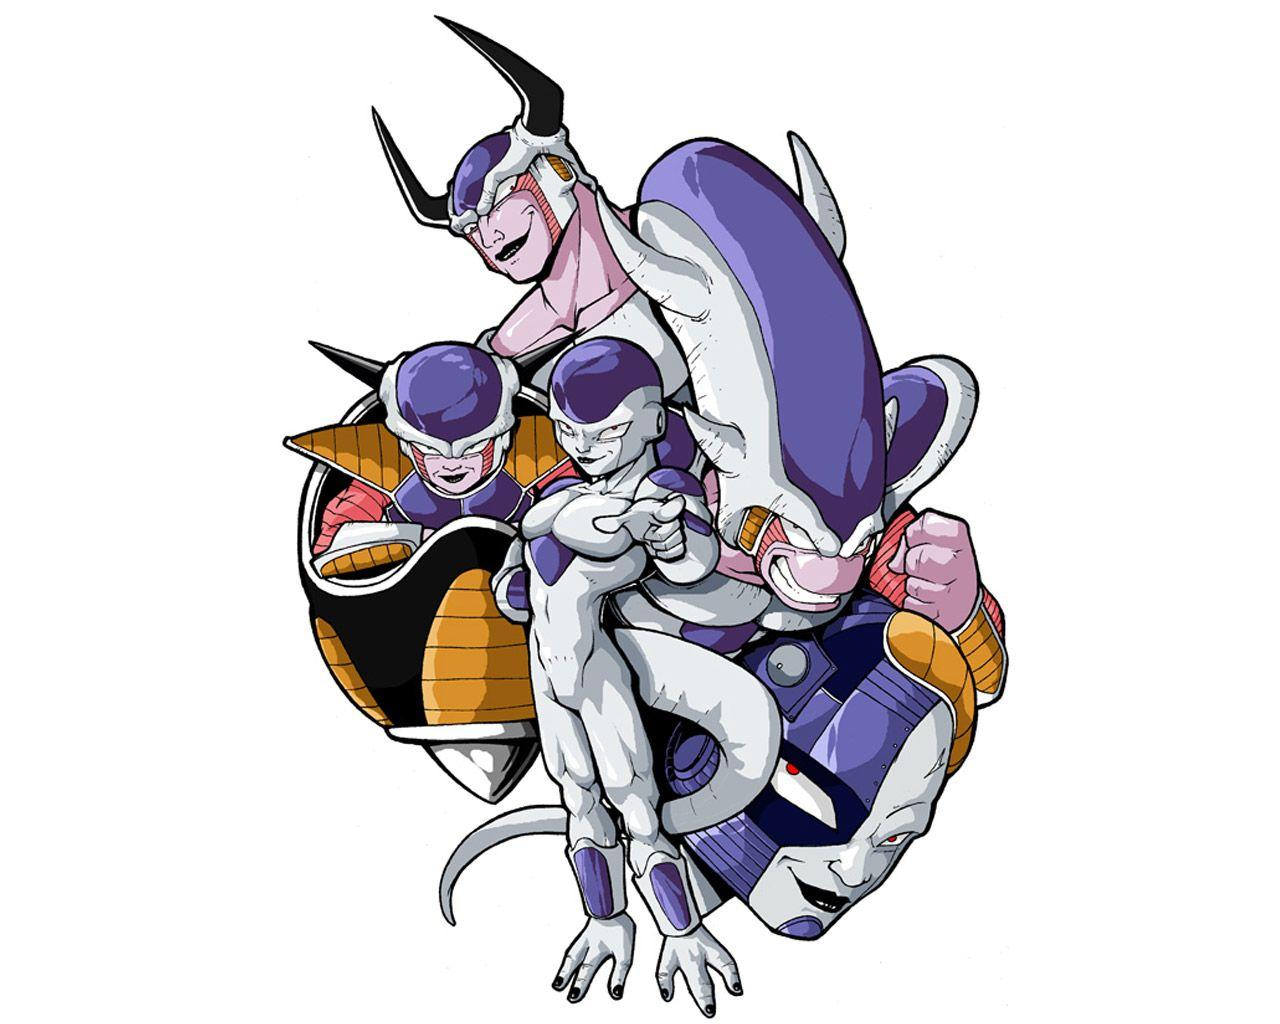 dbz frieza wallpaper - photo #29